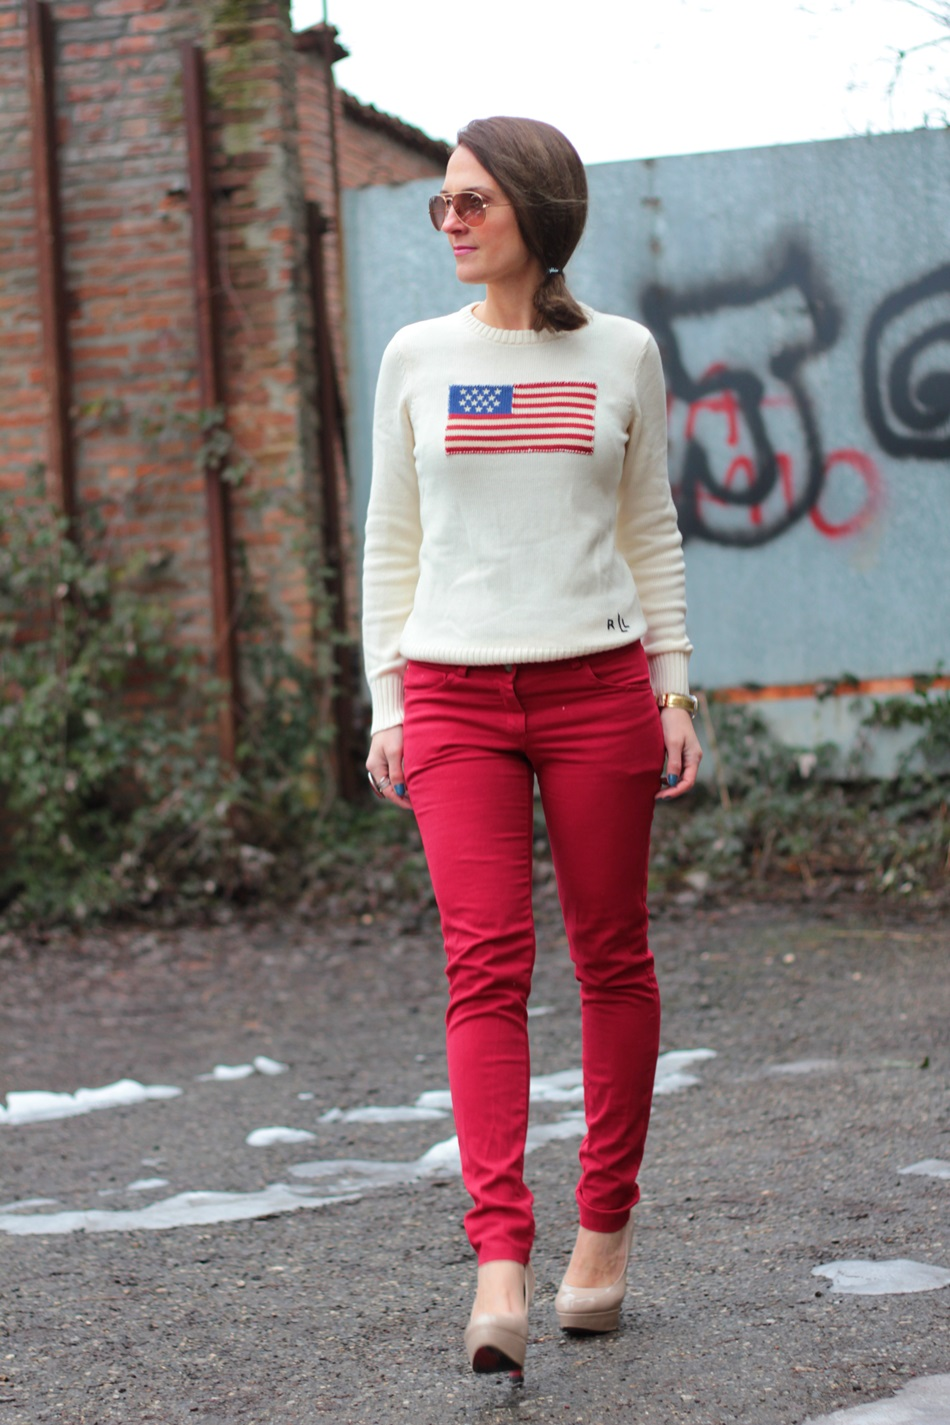 Flag sweater and Red Pant on my Fashion Blog